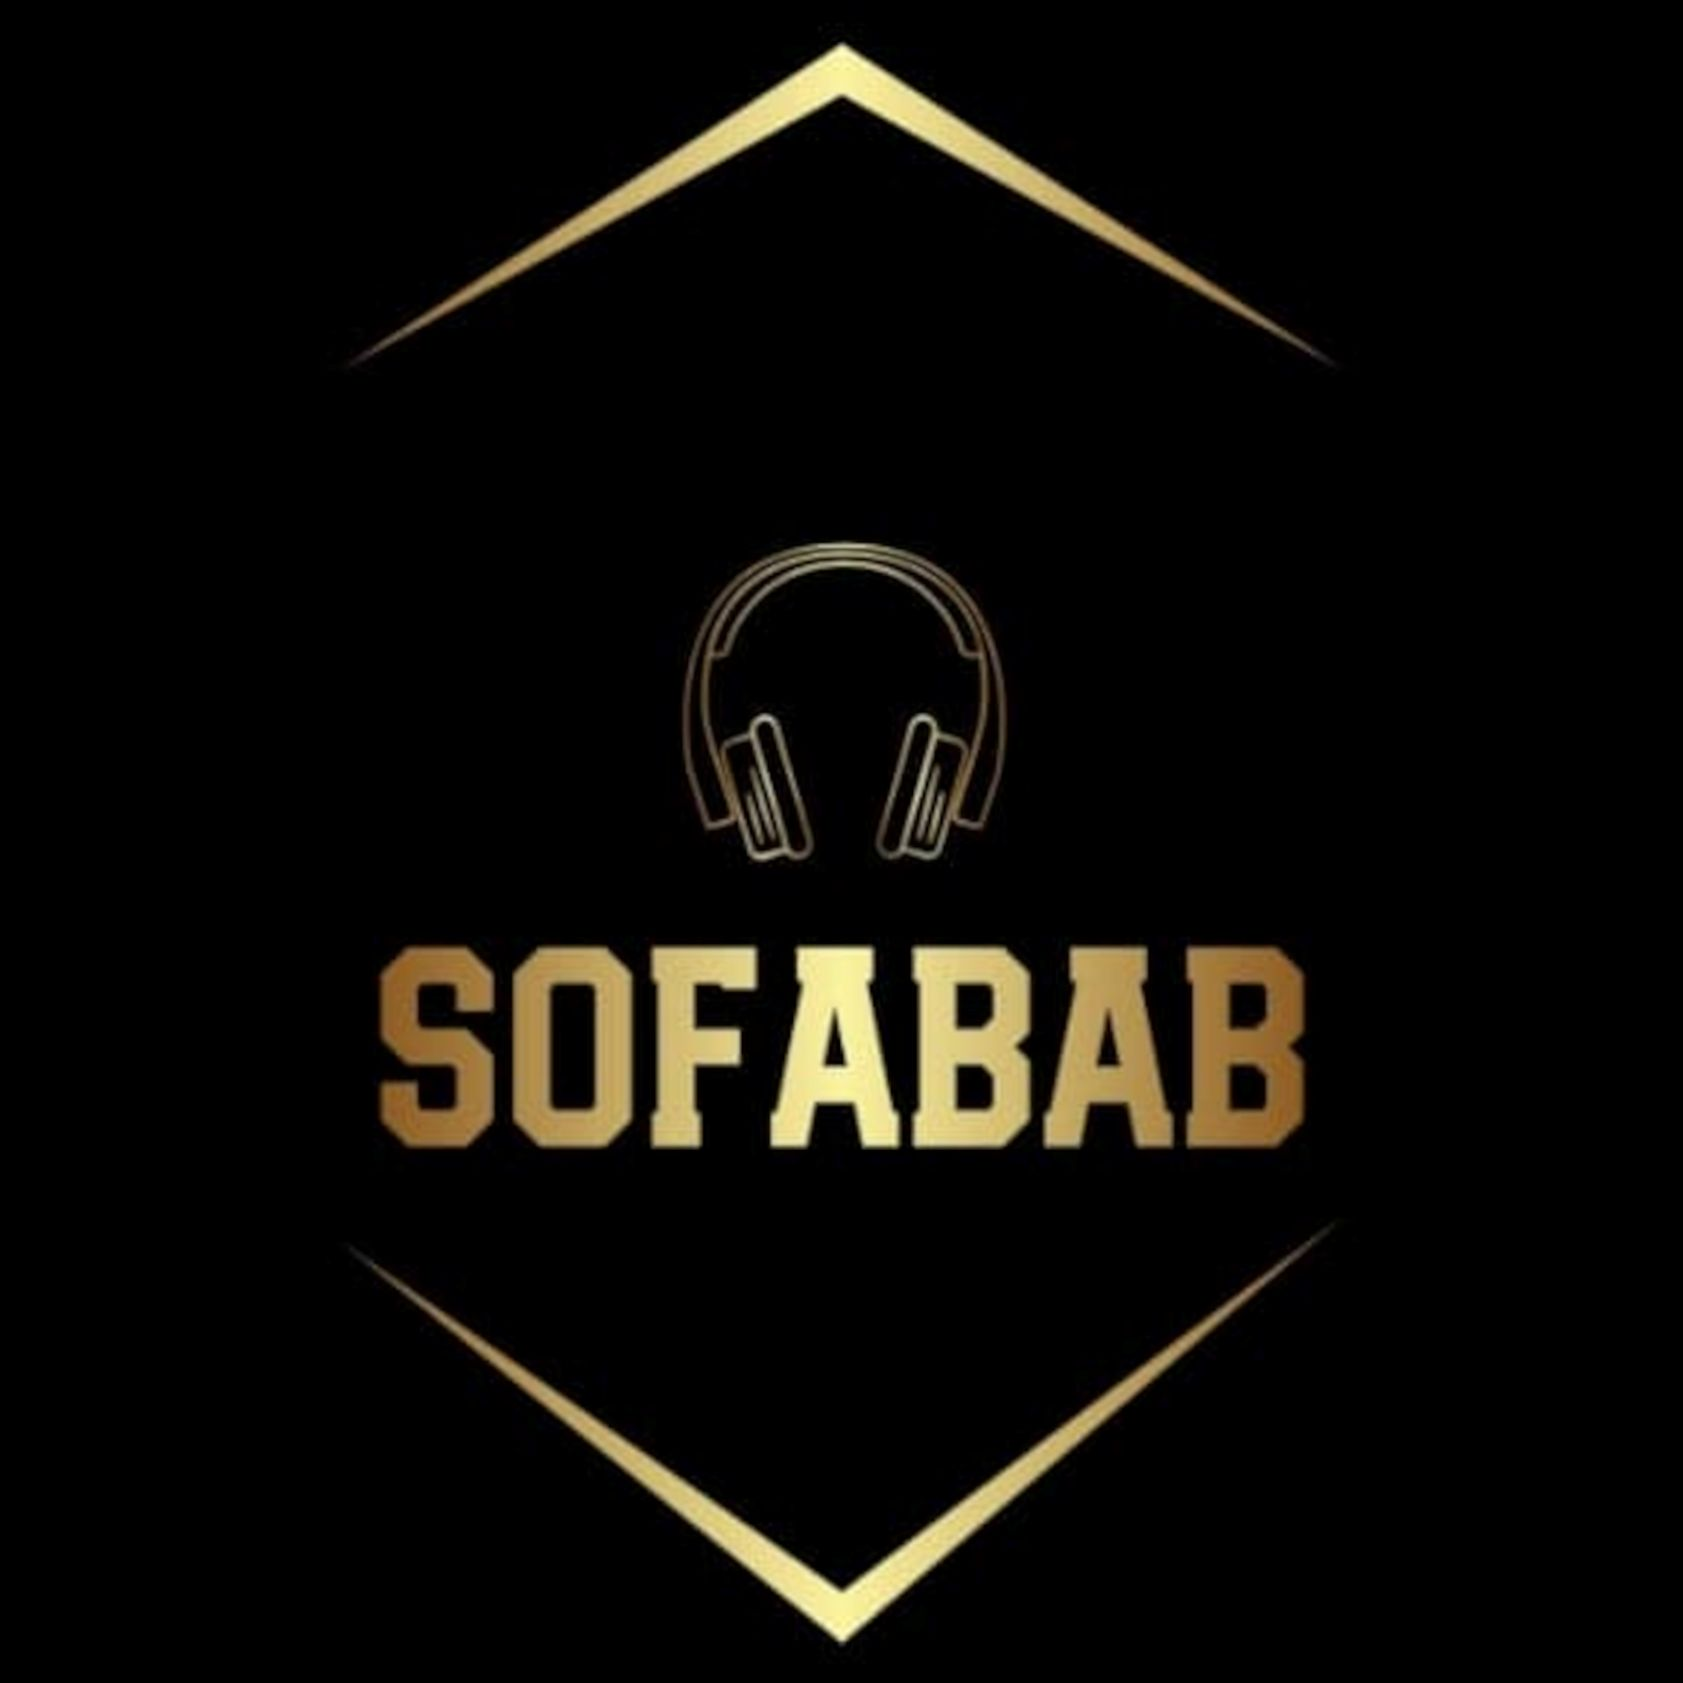 SOFABAB